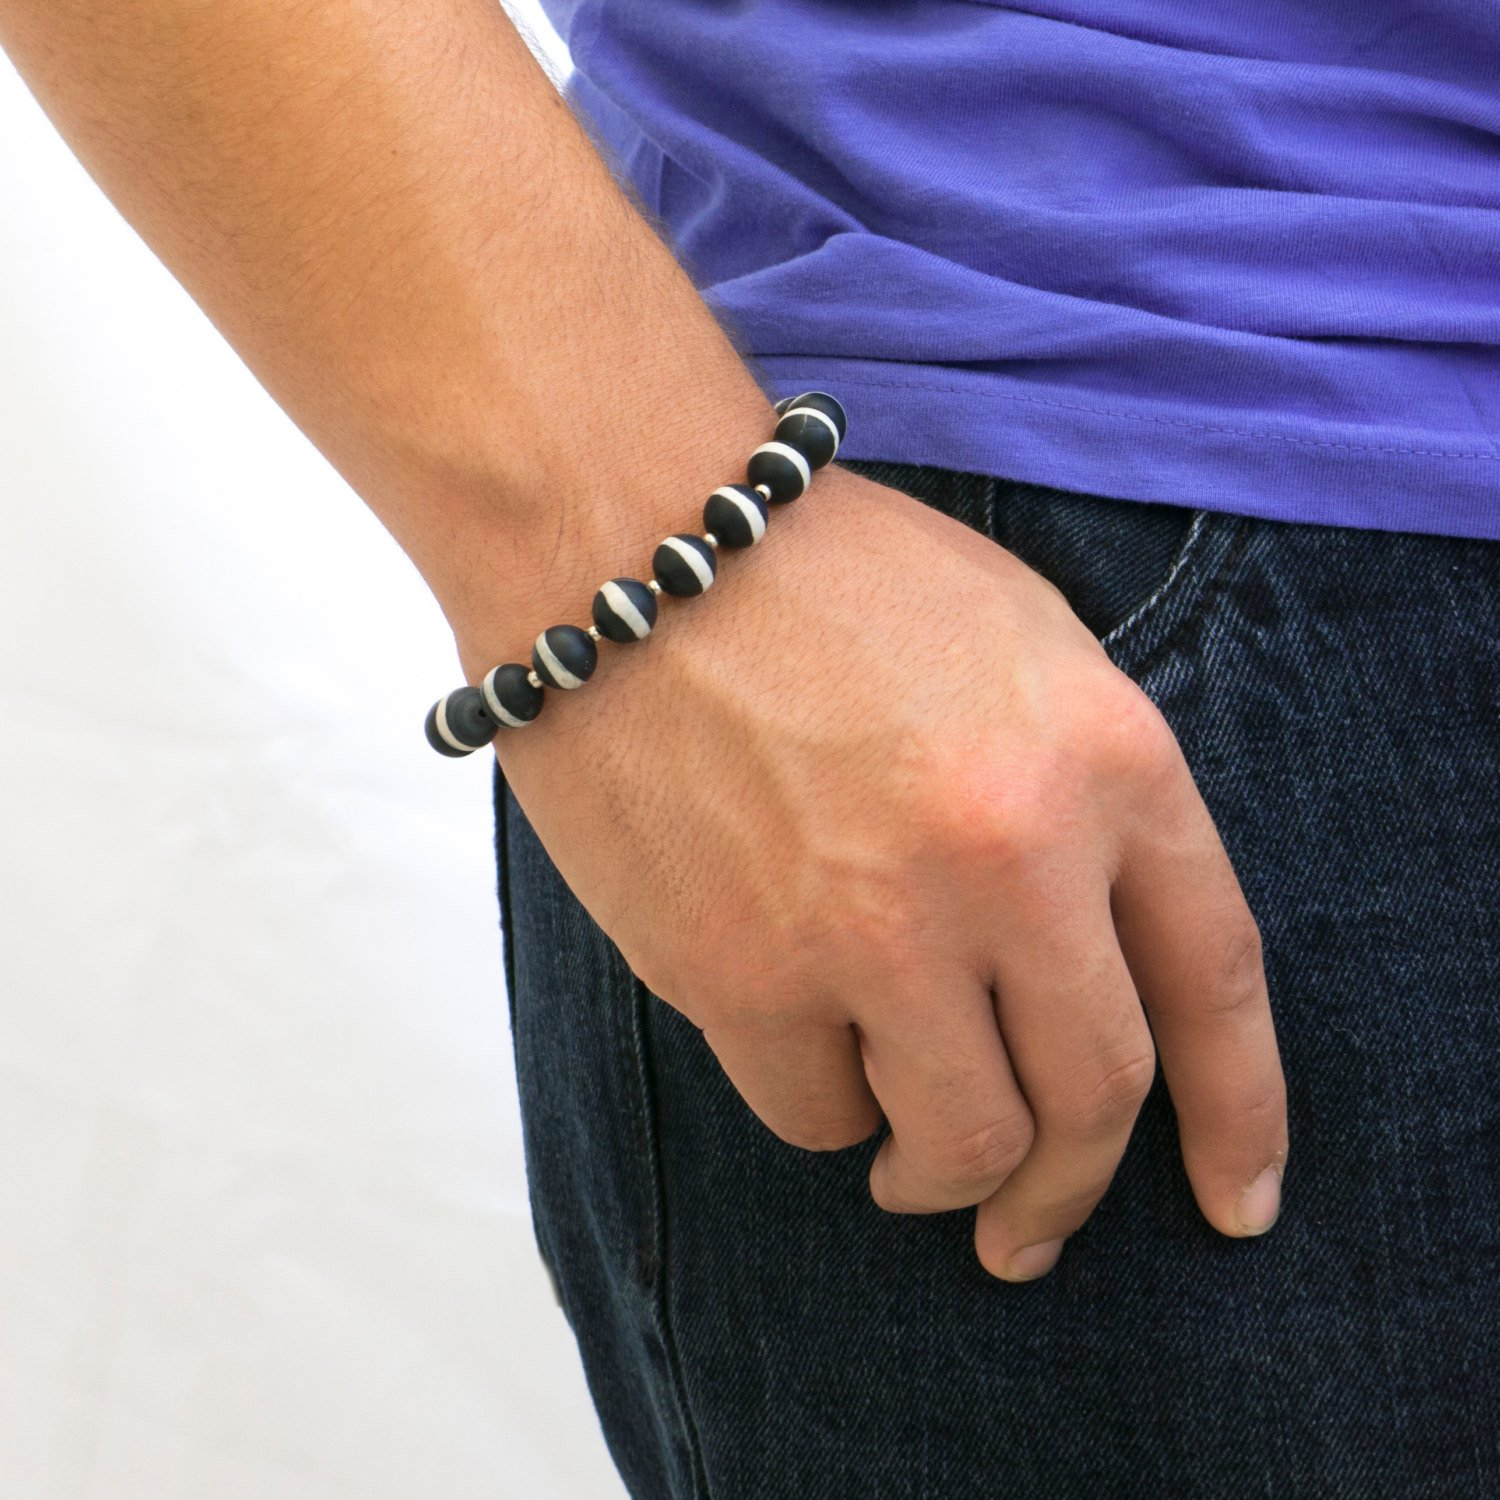 Men's Bracelet - Men's Beaded Bracelet - Men's Jewelry - Men's Vegan Bracelet - Men's Gift